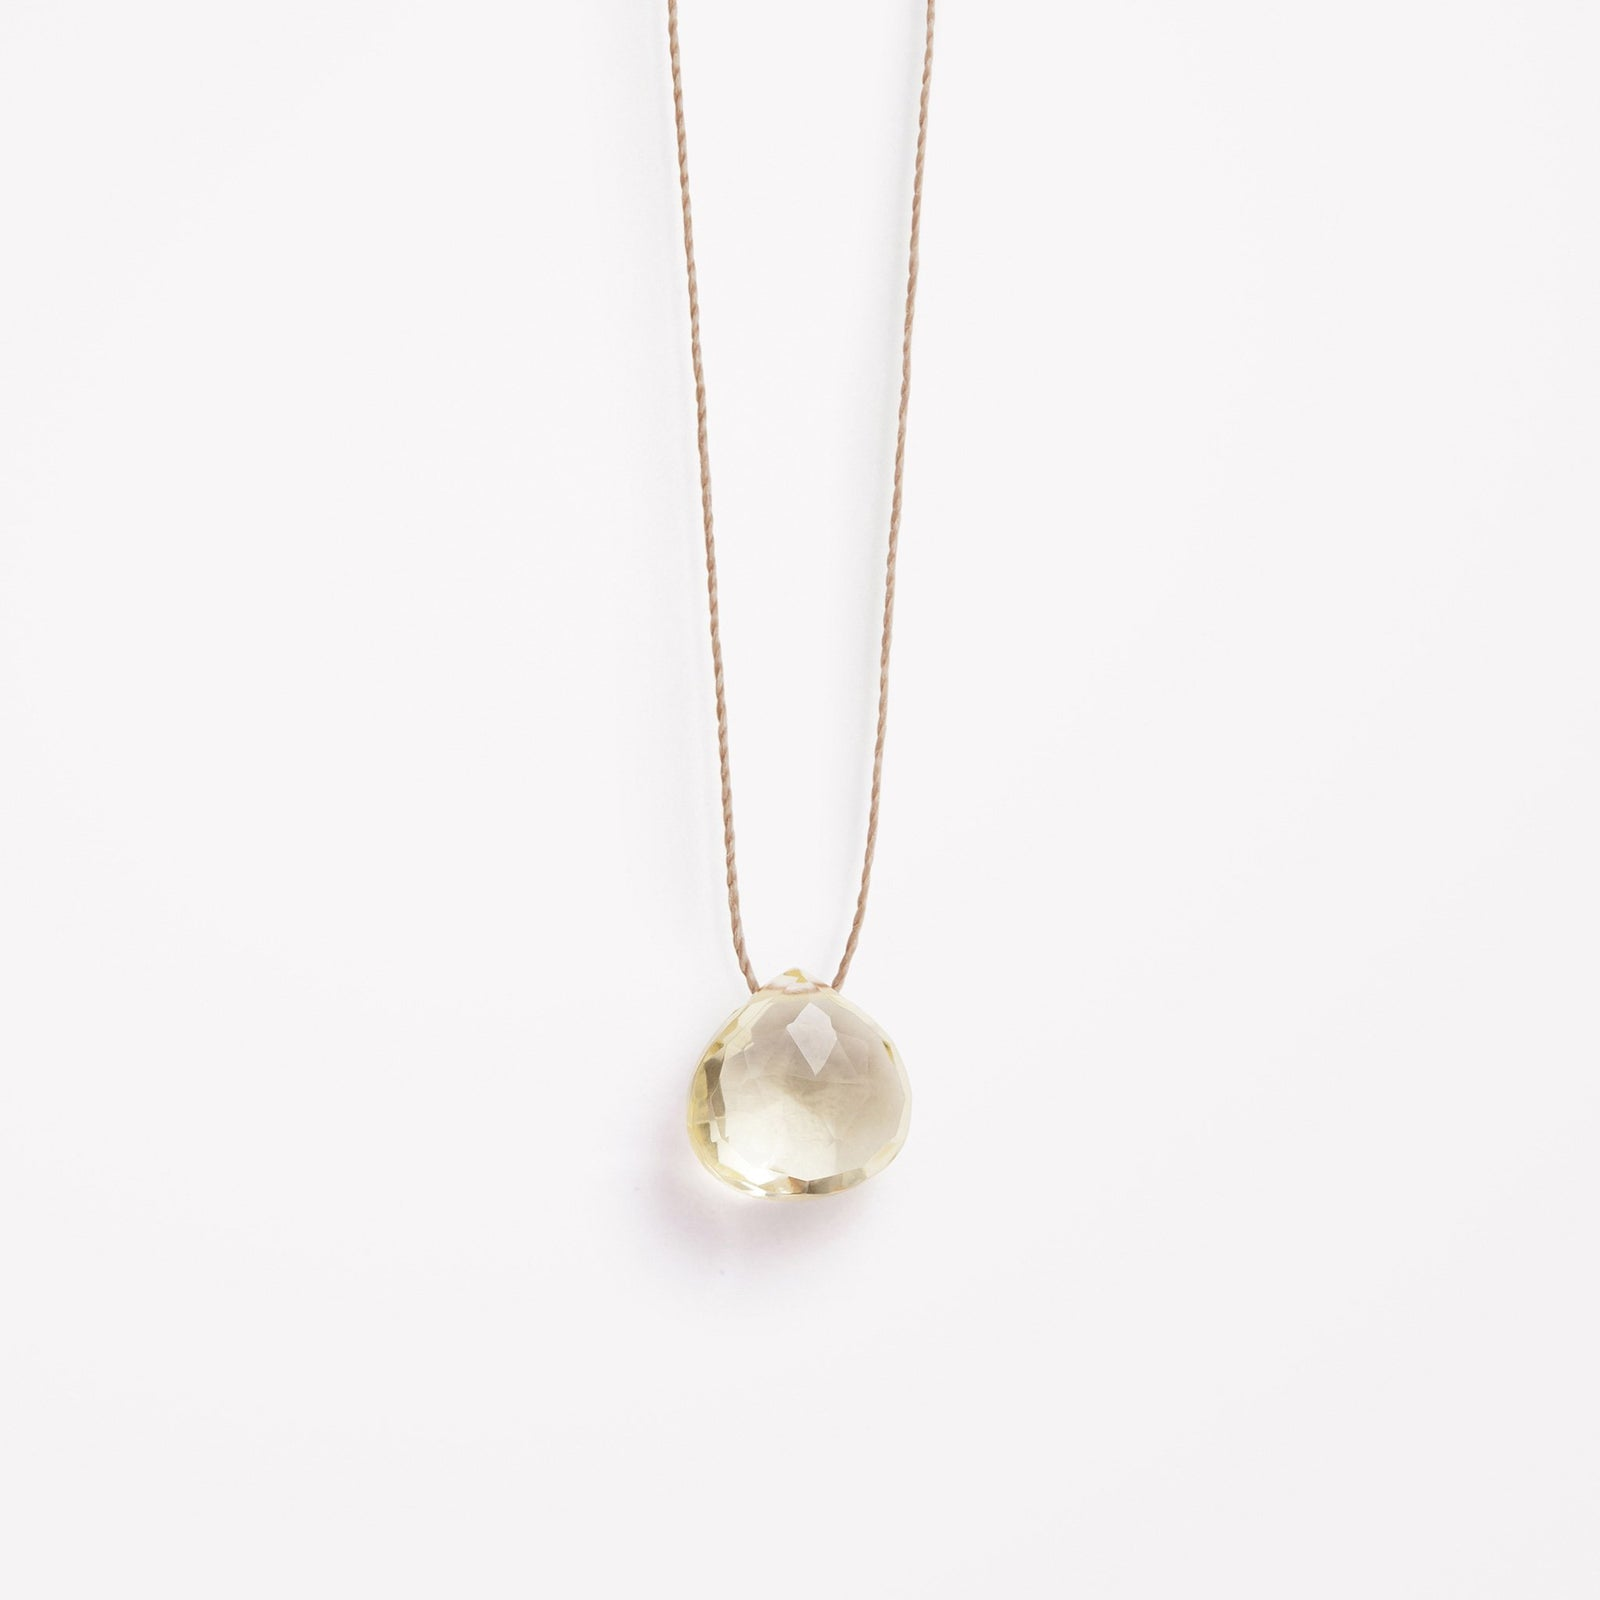 Wanderlust Life Ethically Handmade jewellery made in the UK. Minimalist gold and fine cord jewellery. solar plexus, lemon quartz fine cord necklace